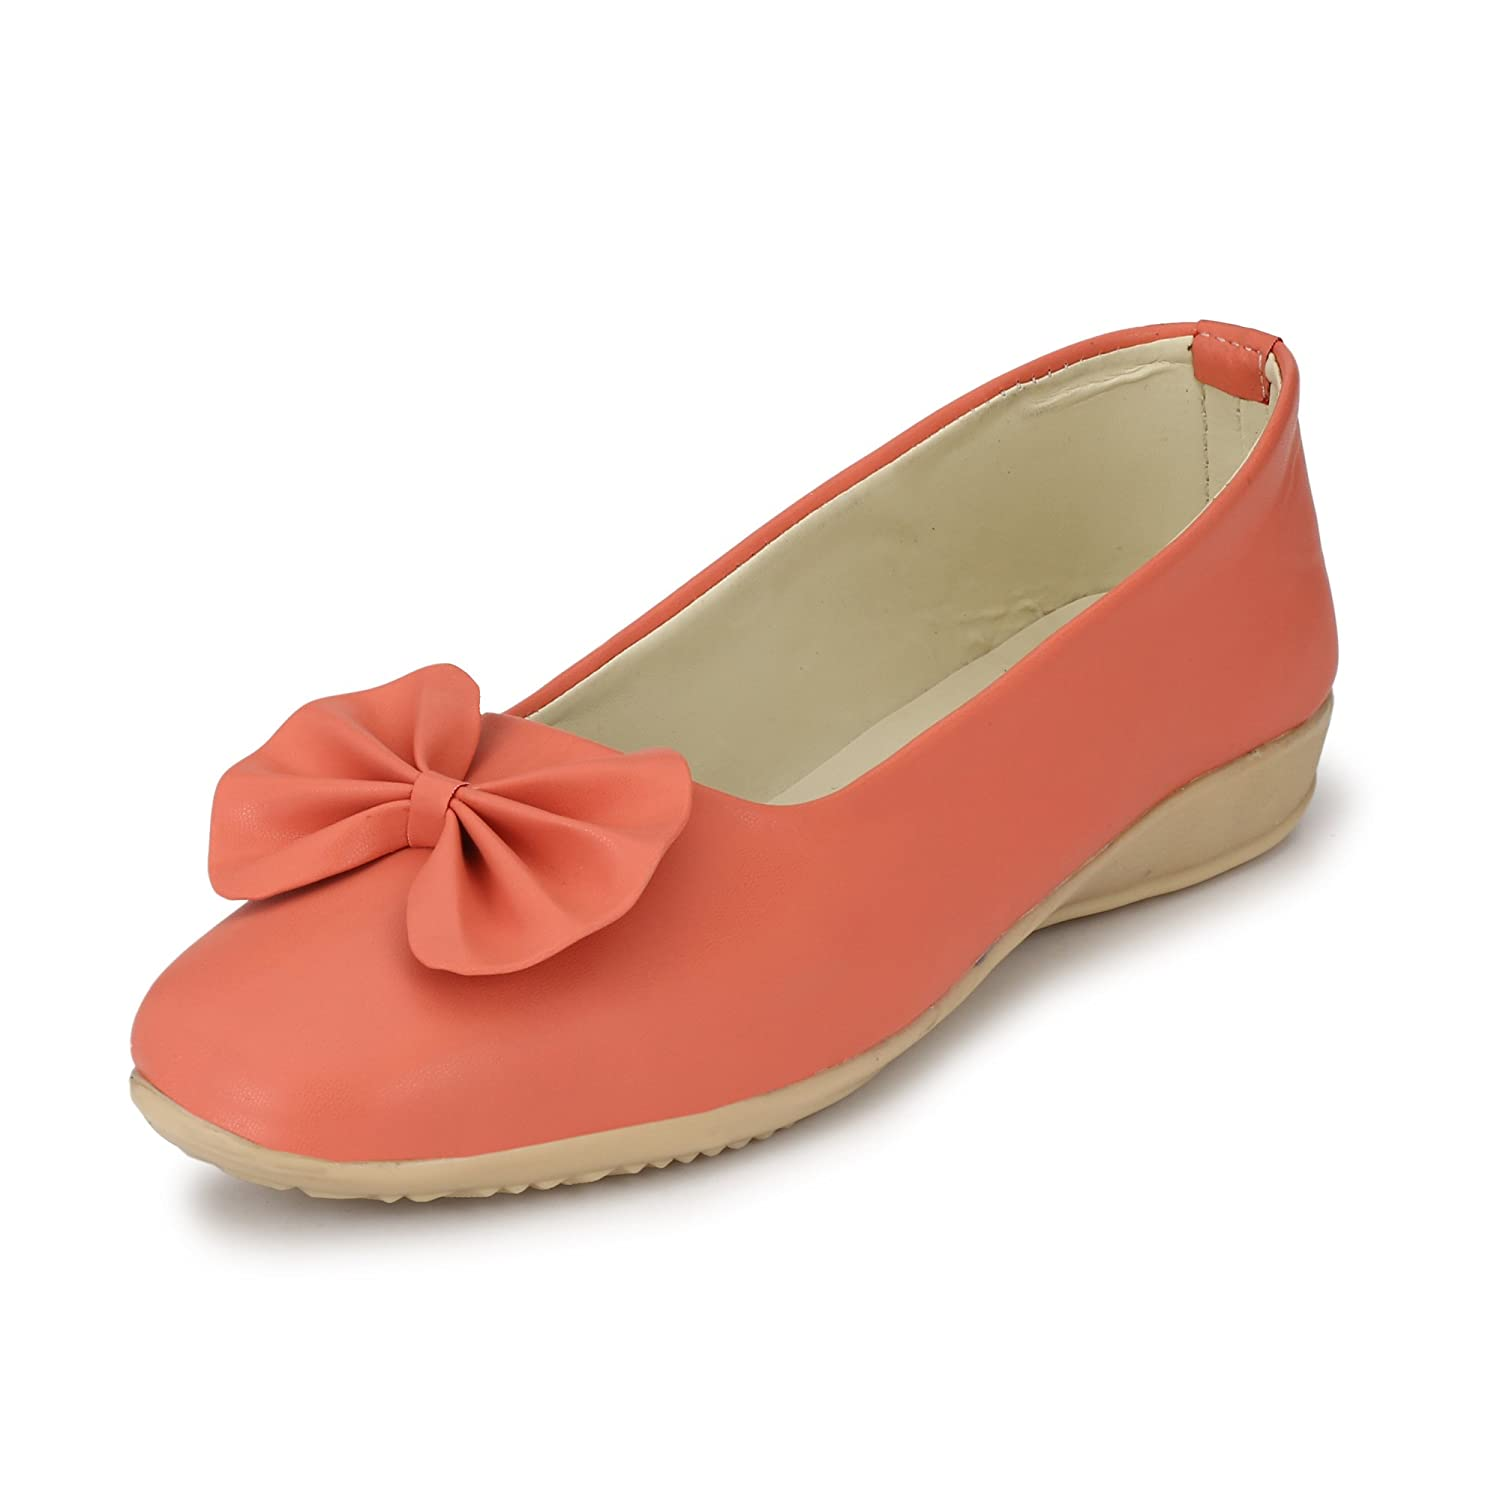 belly shoes for girl images